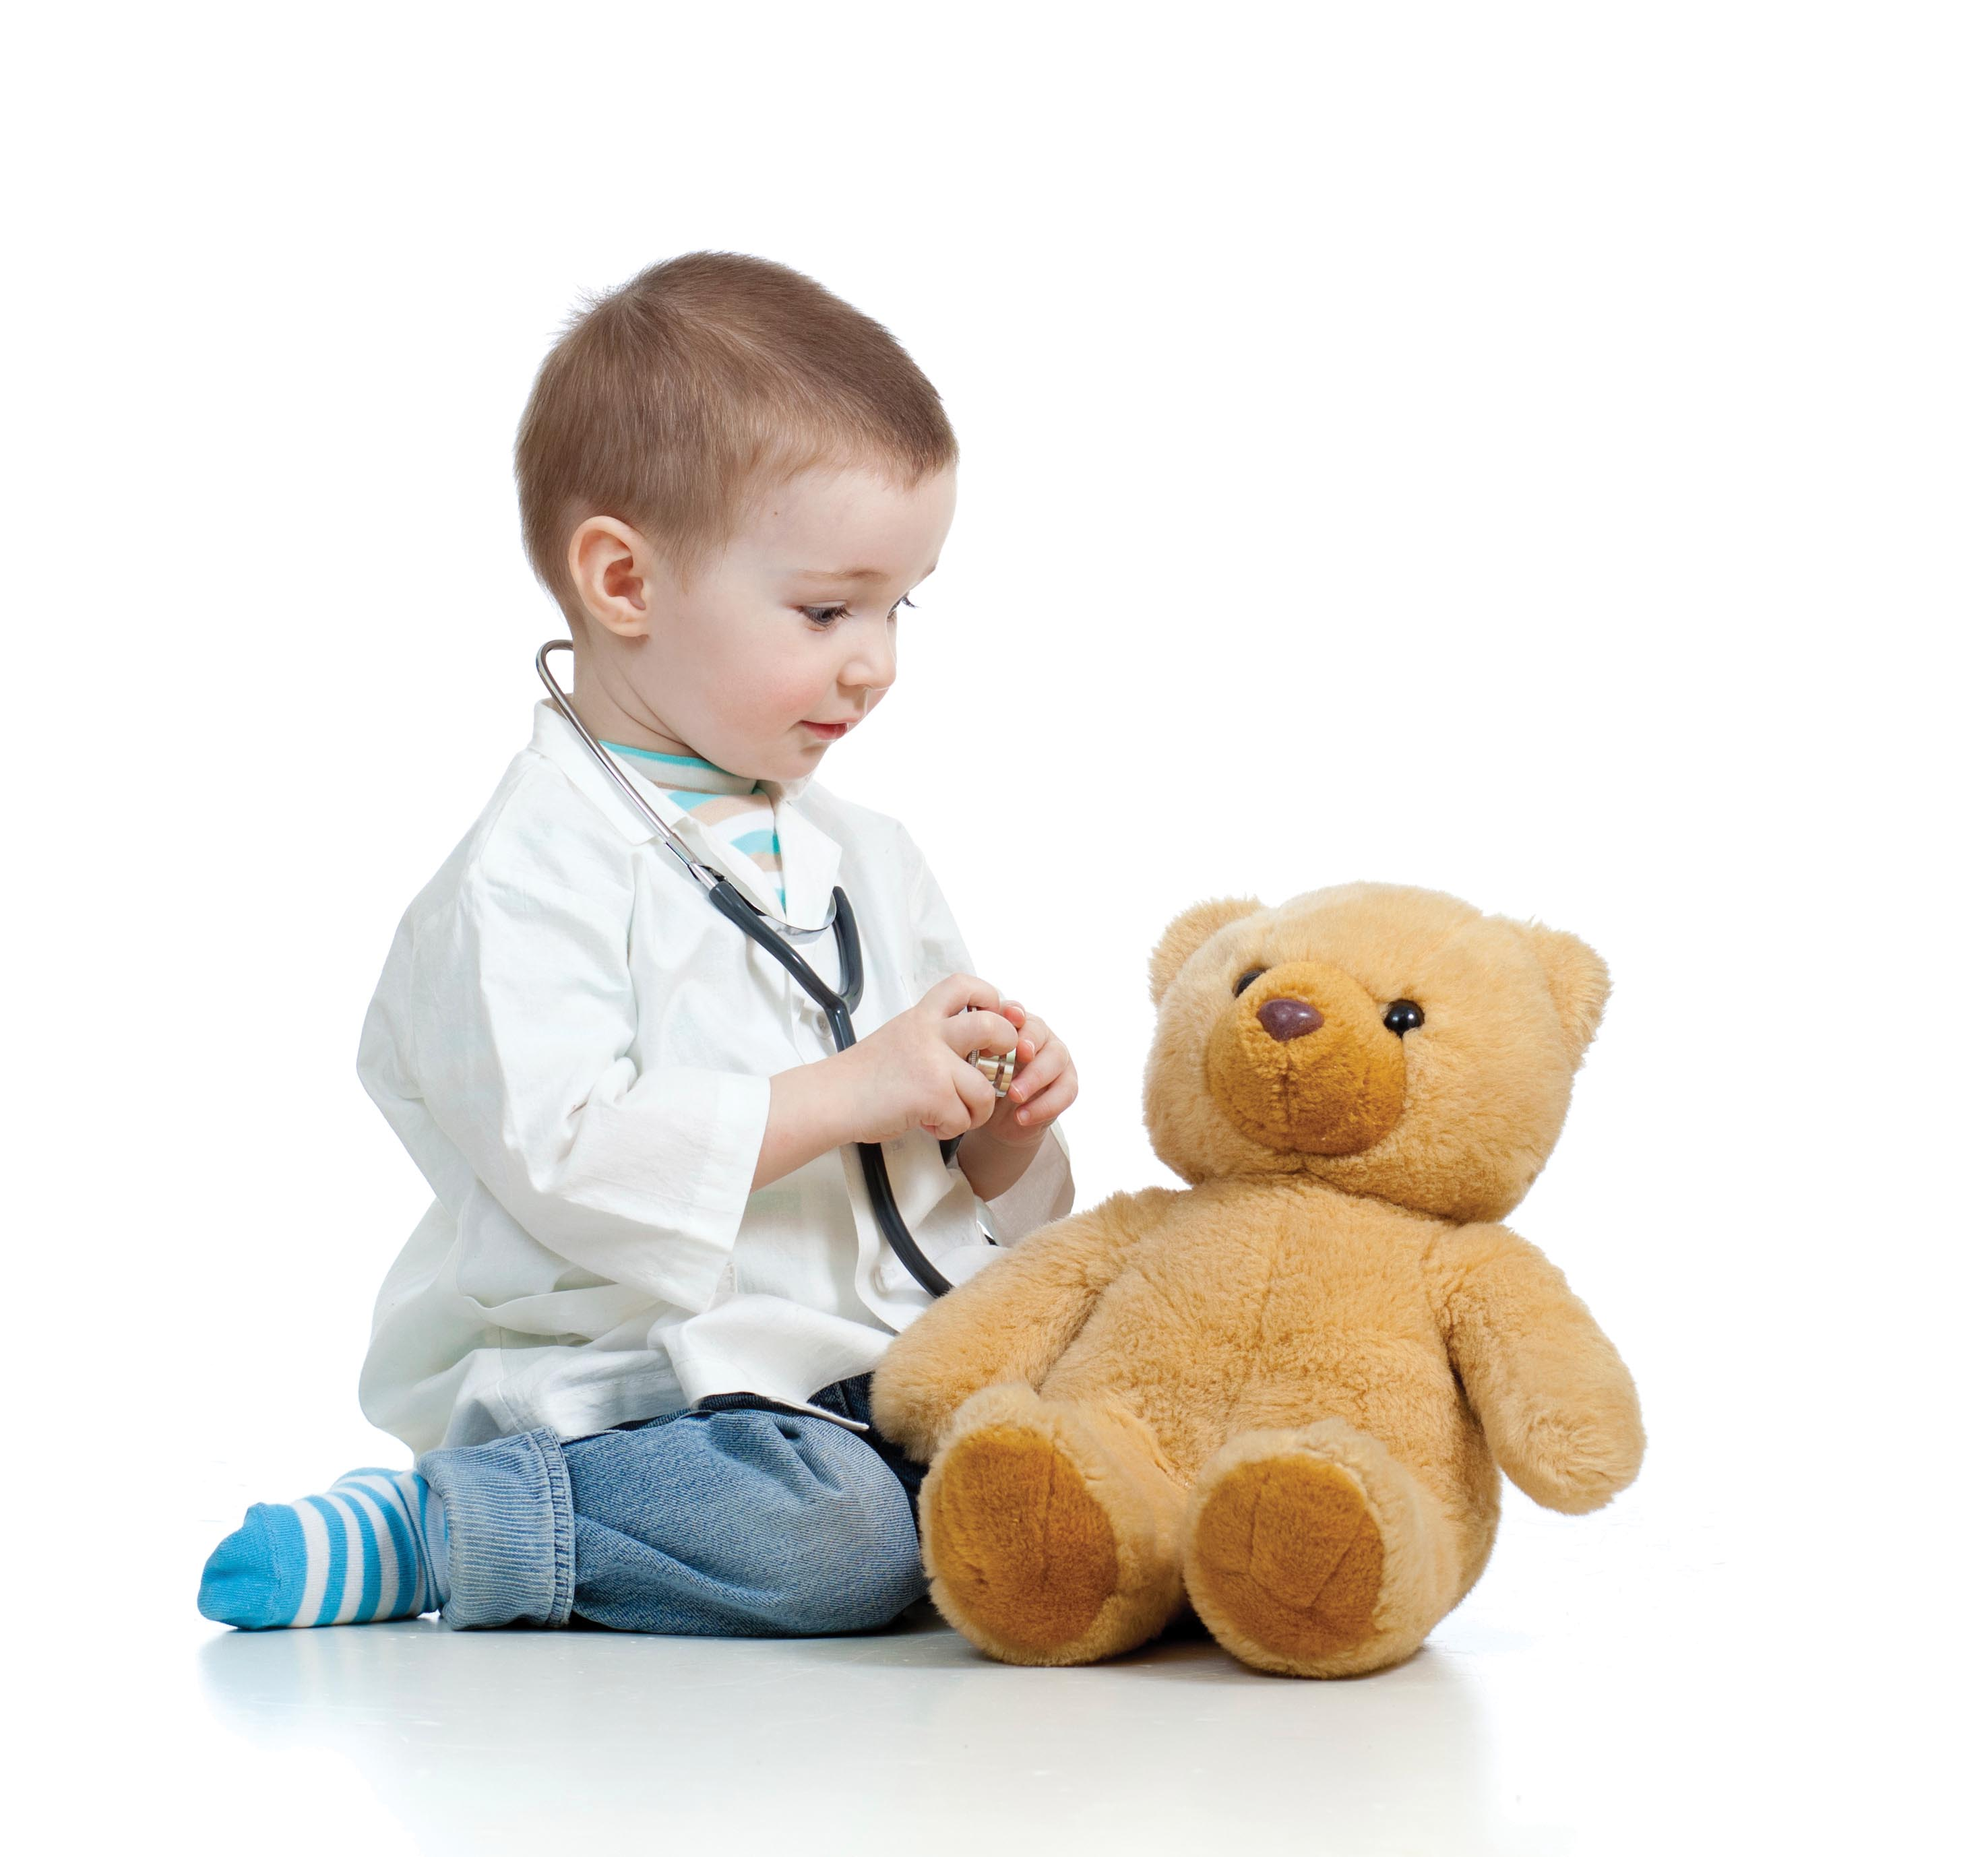 Http Cliparts Co Kids Doctor Photo